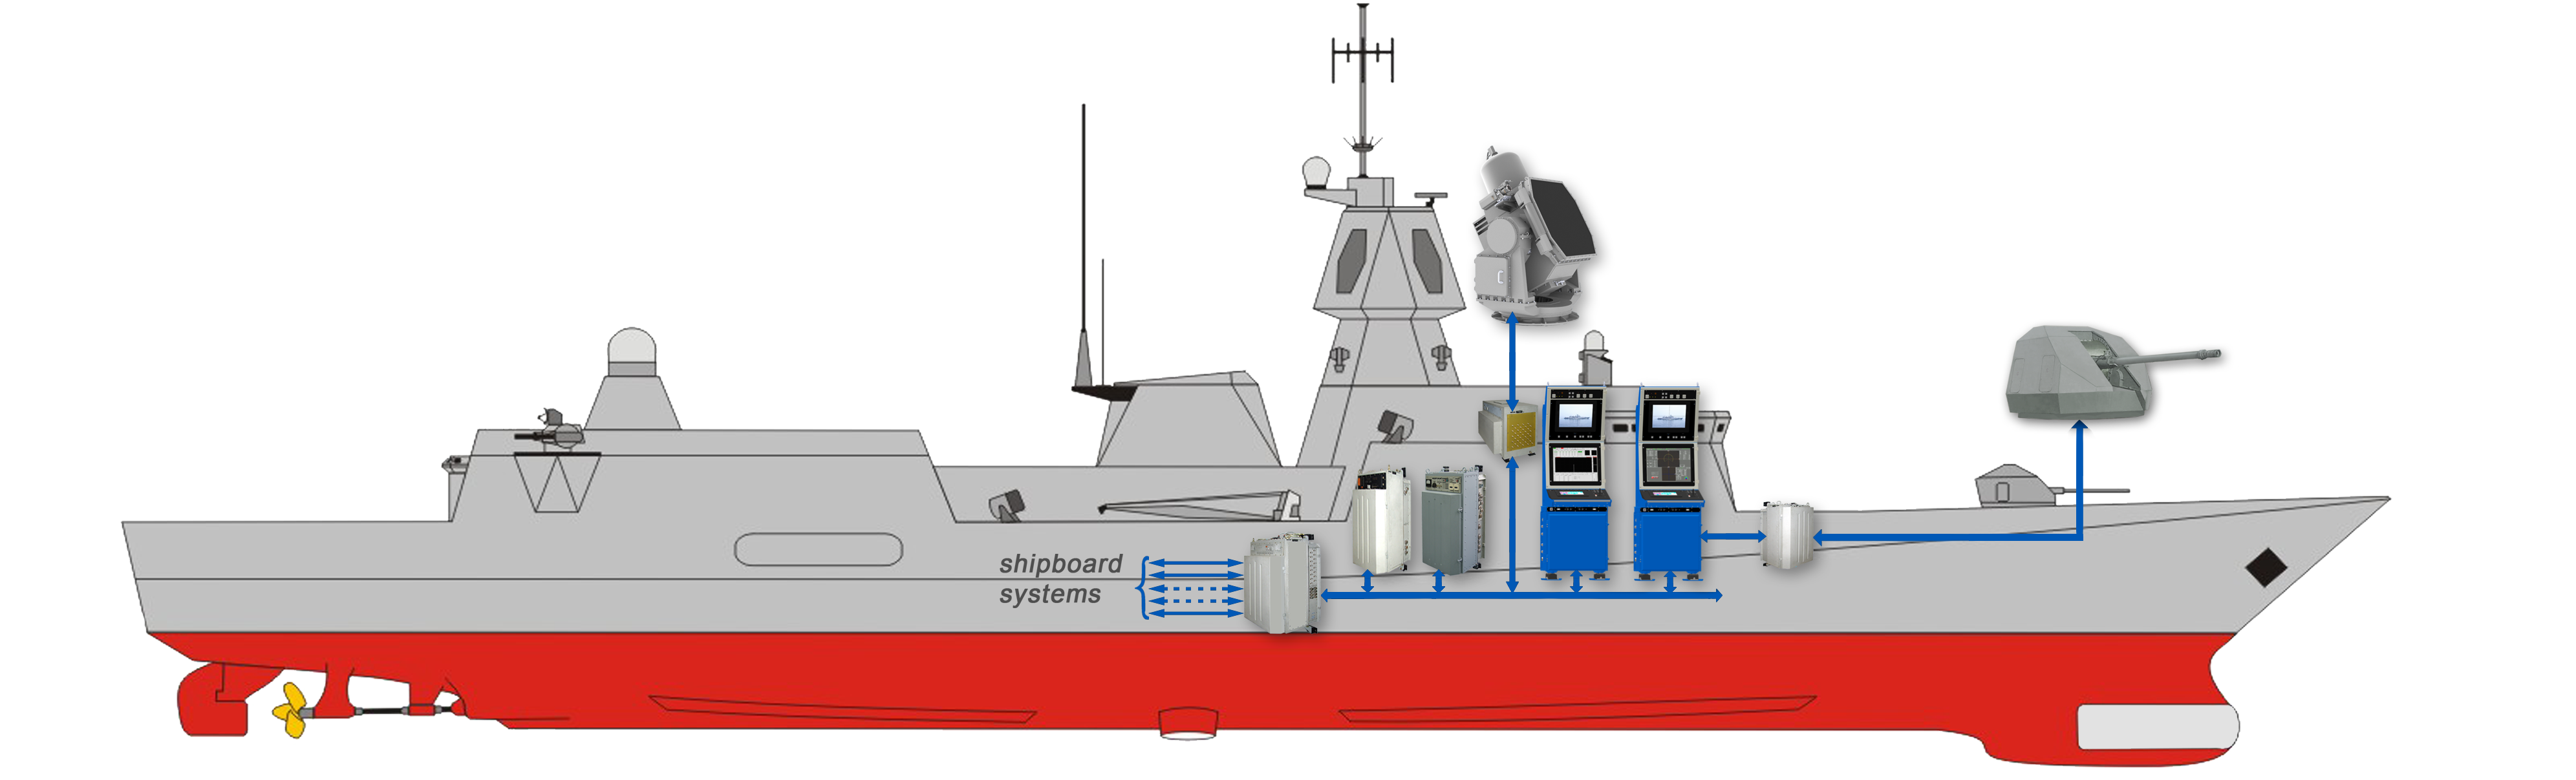 clipart library download Transparent free for . Navy clipart frigate.